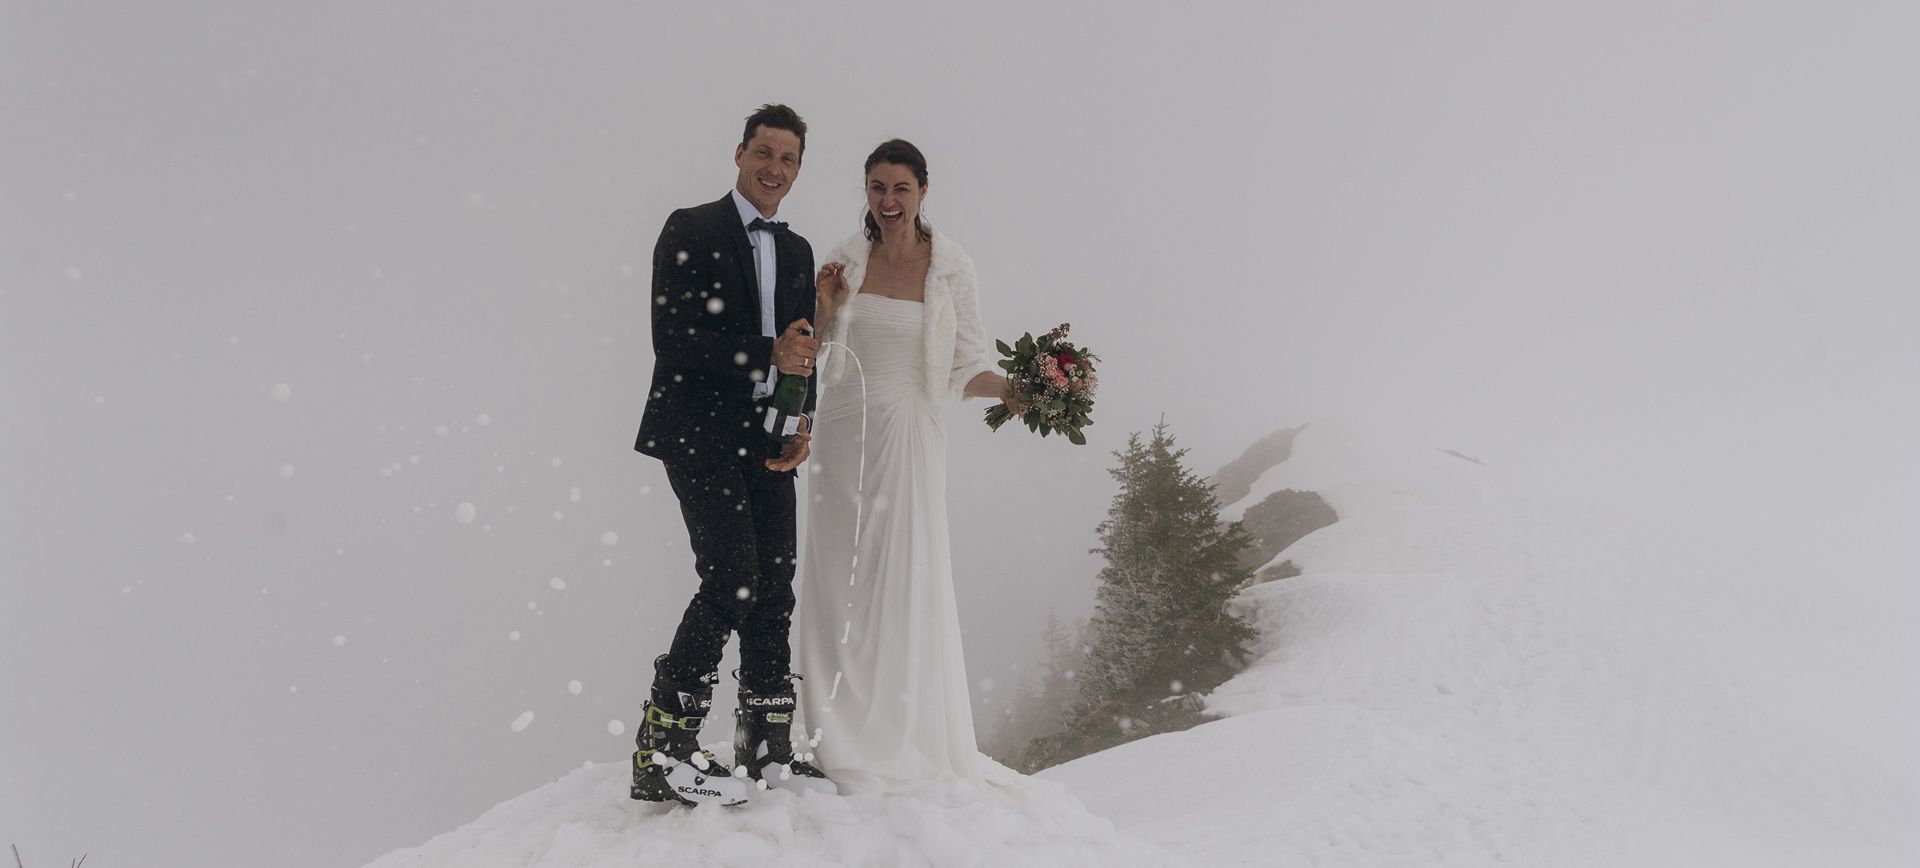 winter mountain elopement with skiing and welness in austria